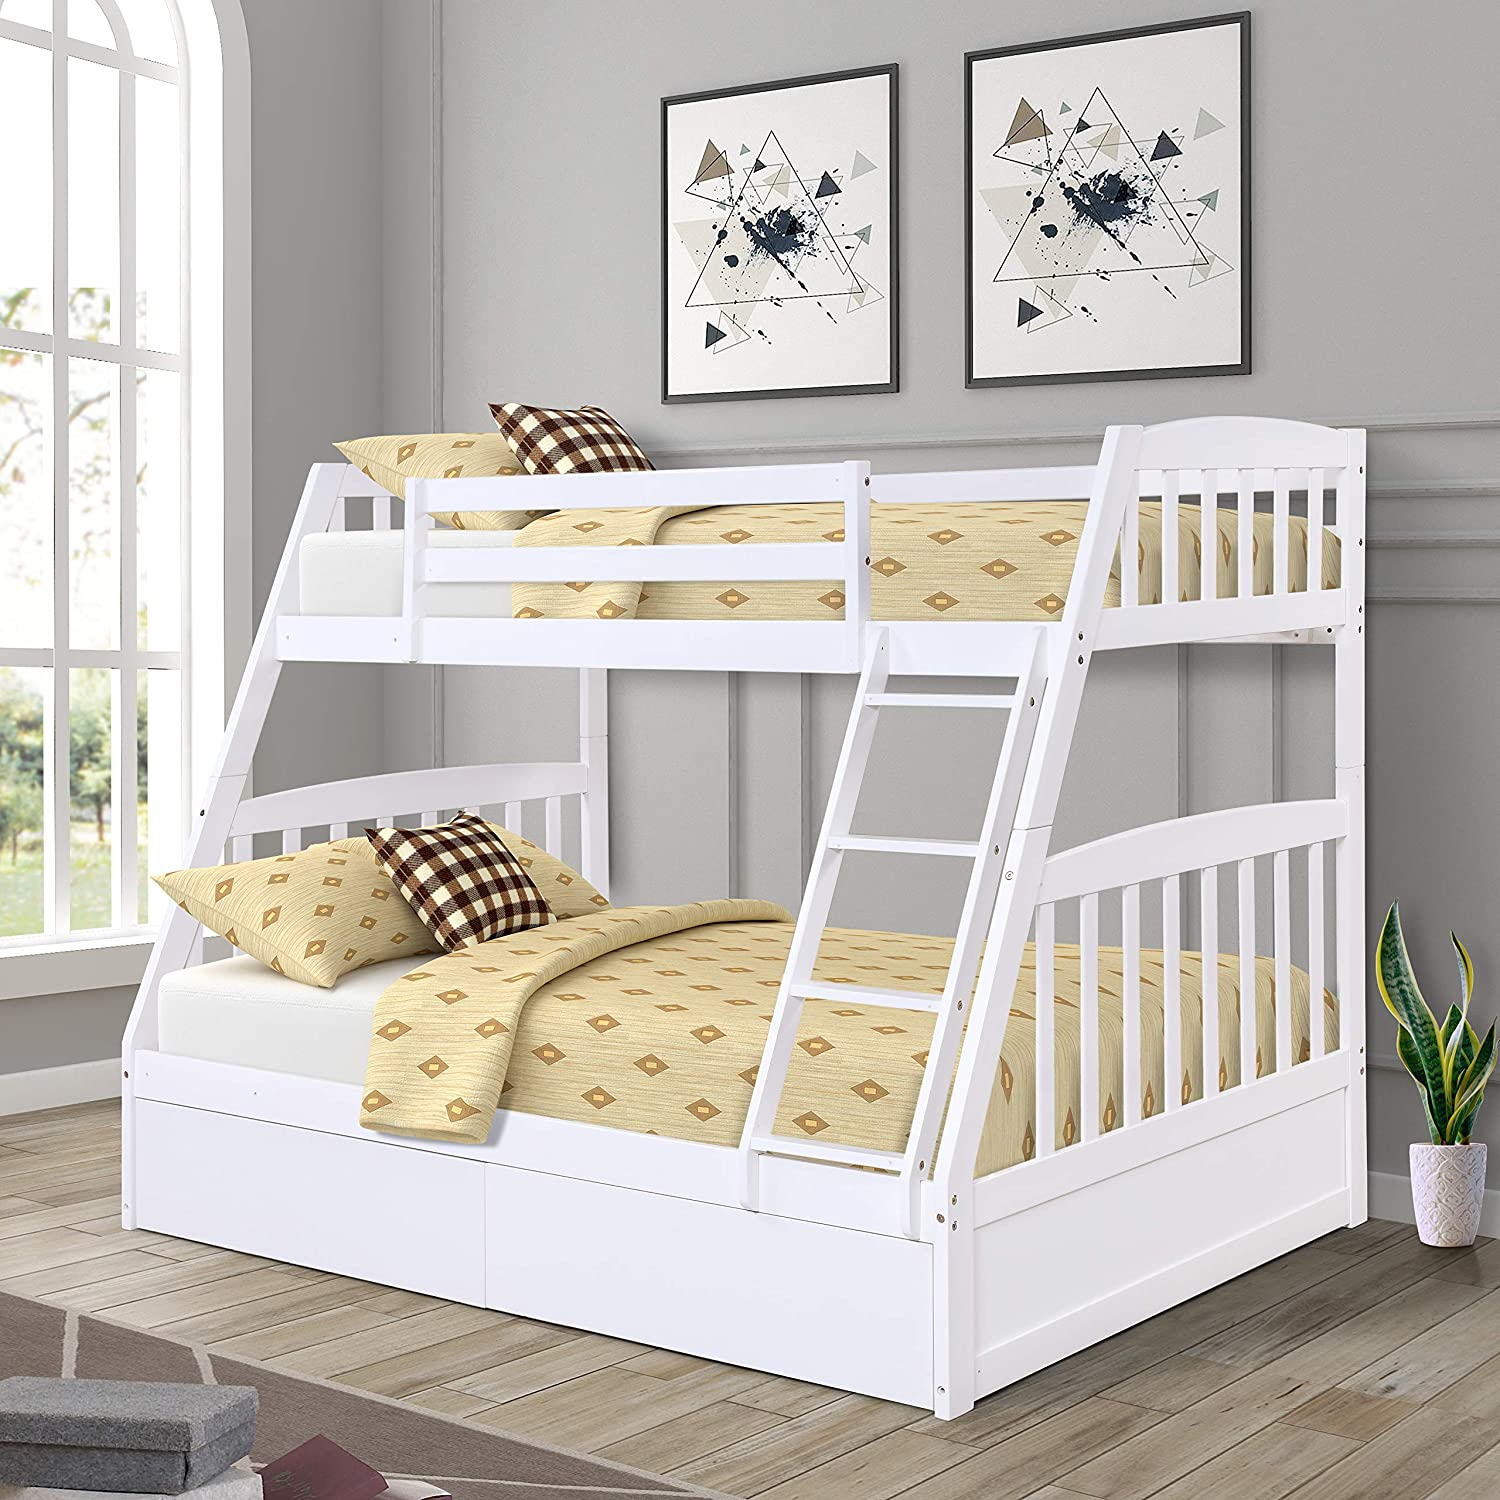 EiioX Twin Over Full Bunk Bed, Solid Pine Wood with Safety Rail, 2 Storage Drawers and Stairway, for Children, Teens Bedroom, Guest Room, White